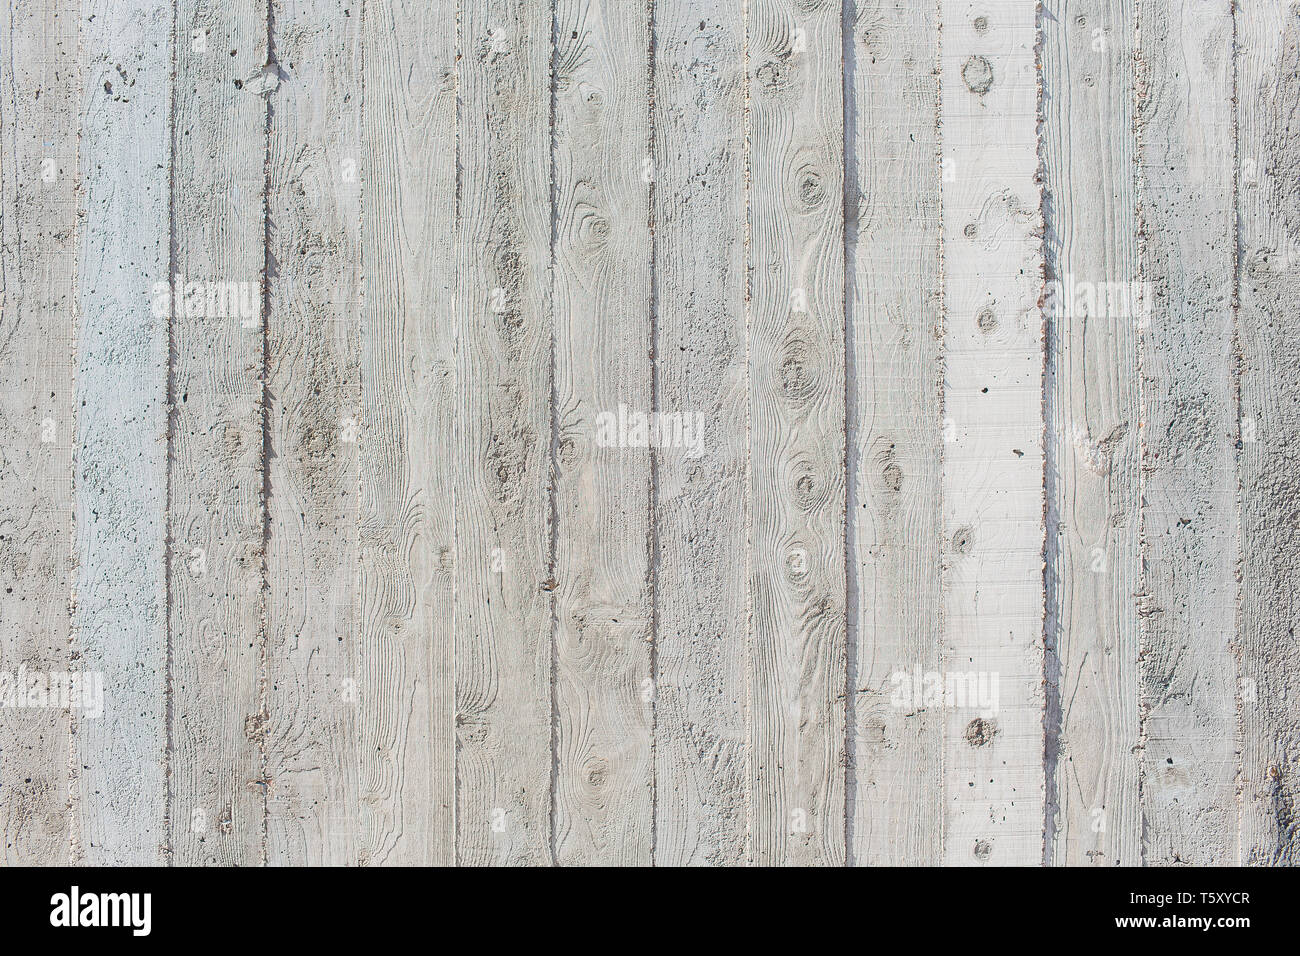 Concrete with a texture of wooden boards. Stock Photo